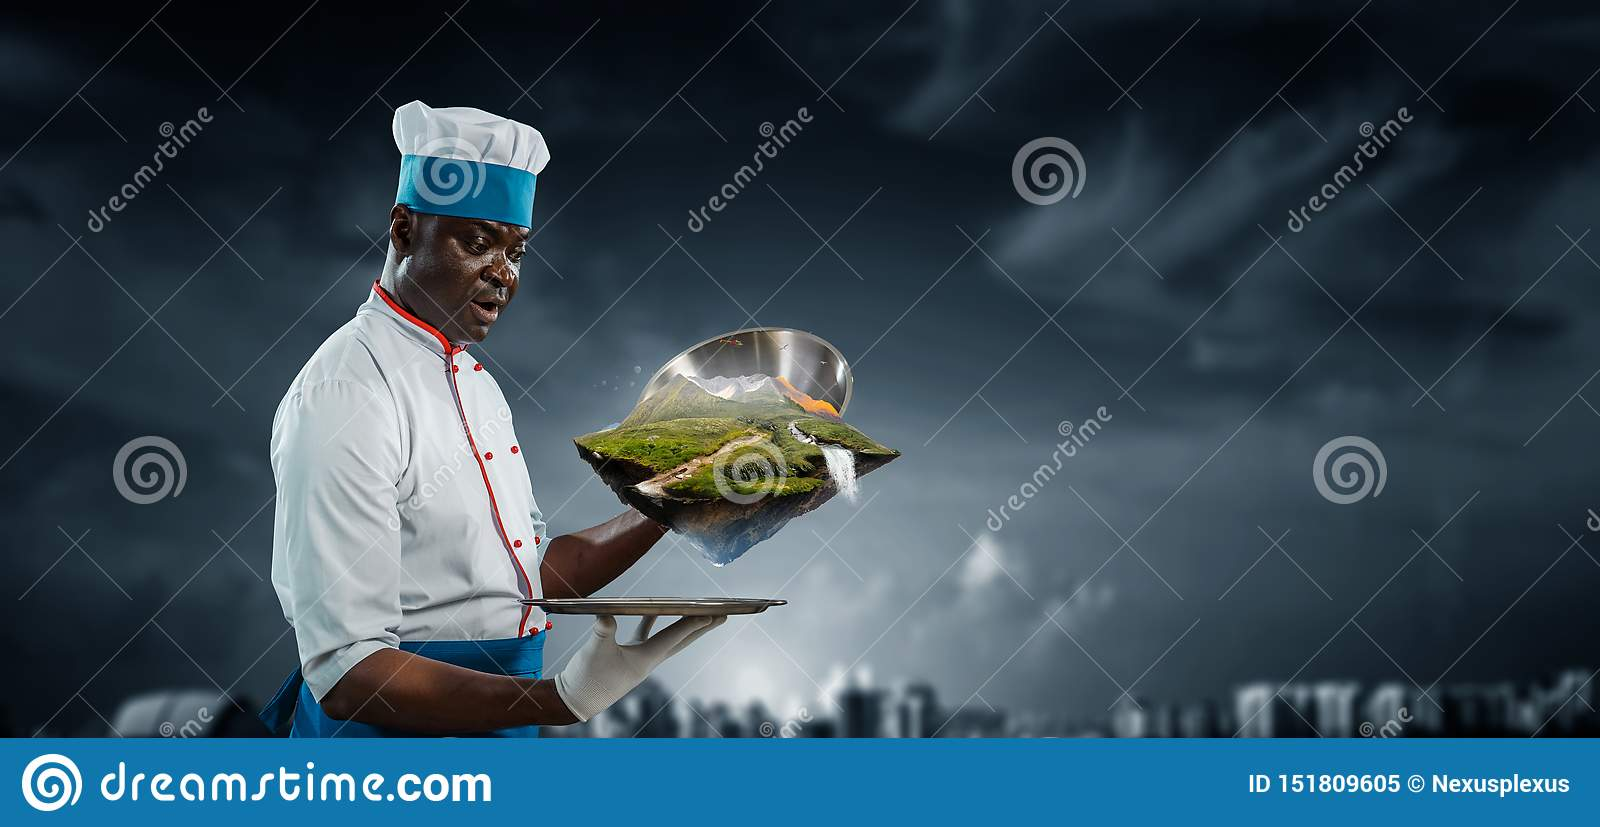 Black man wearing an apron and cooking in action. Mixed media